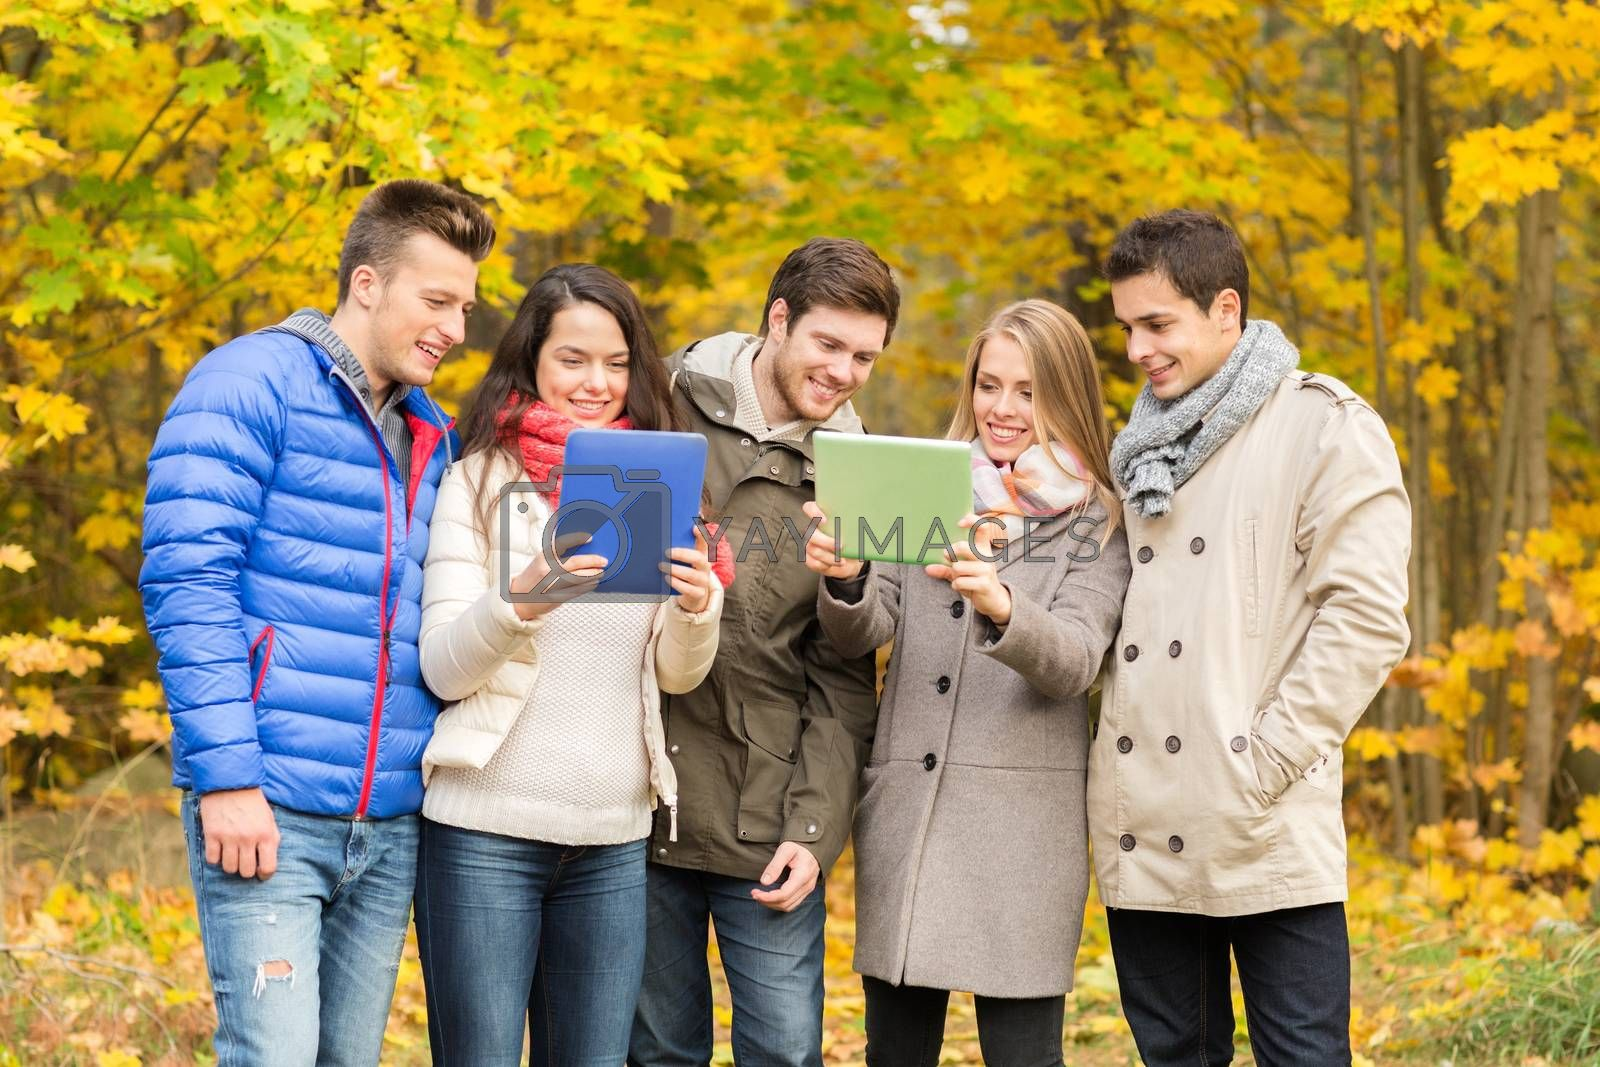 technology, season, friendship and people concept - group of smiling men and women with tablet pc computers in autumn park